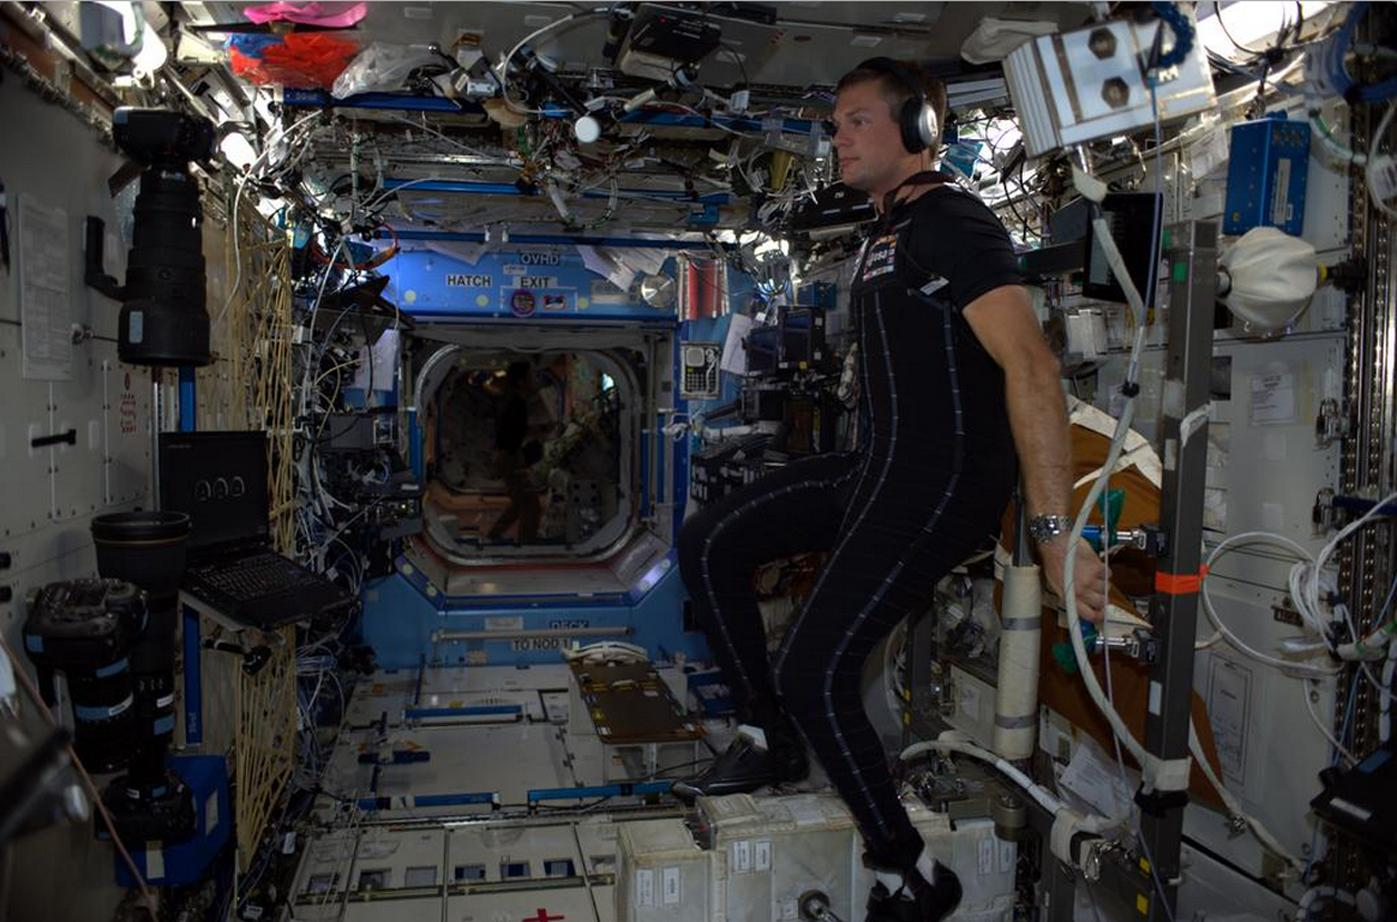 European Space Agency astronaut Andreas Mogensen wearing the SkinSuit on board the International Space Station